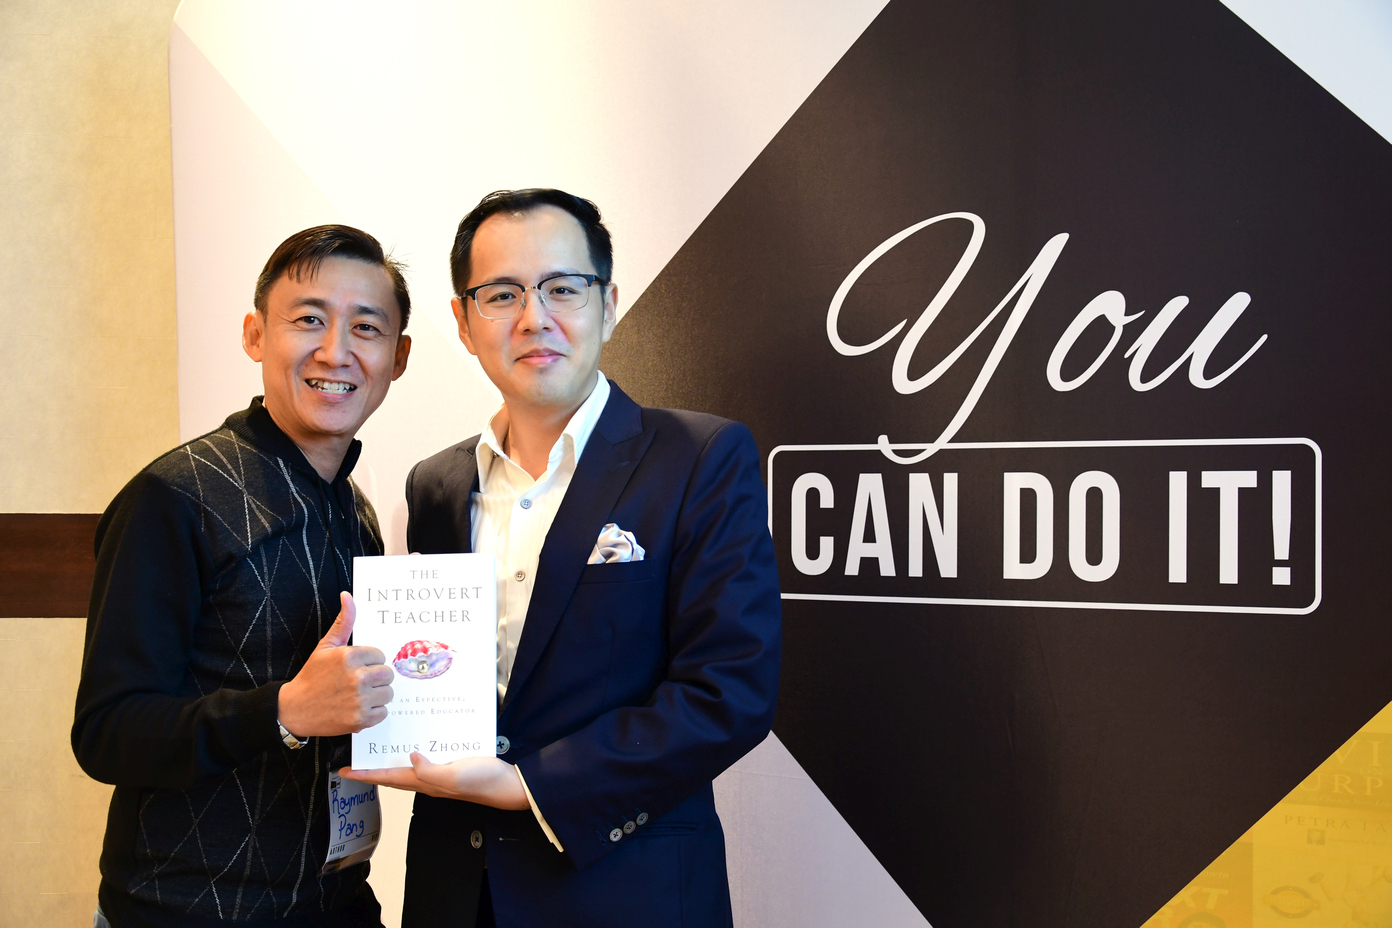 Raymund Pang , Author of A Diamond in the Rough